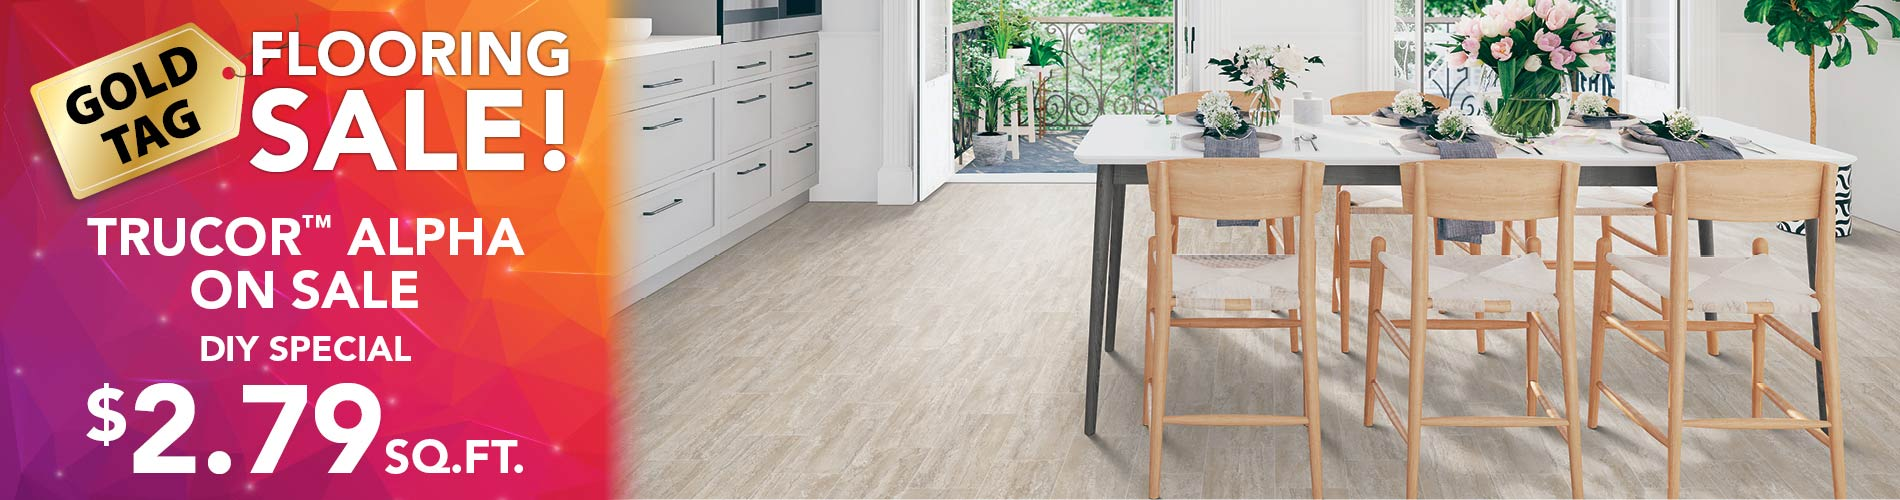 Trucor Alpha on sale. DIY special. $2.79 sq. ft.